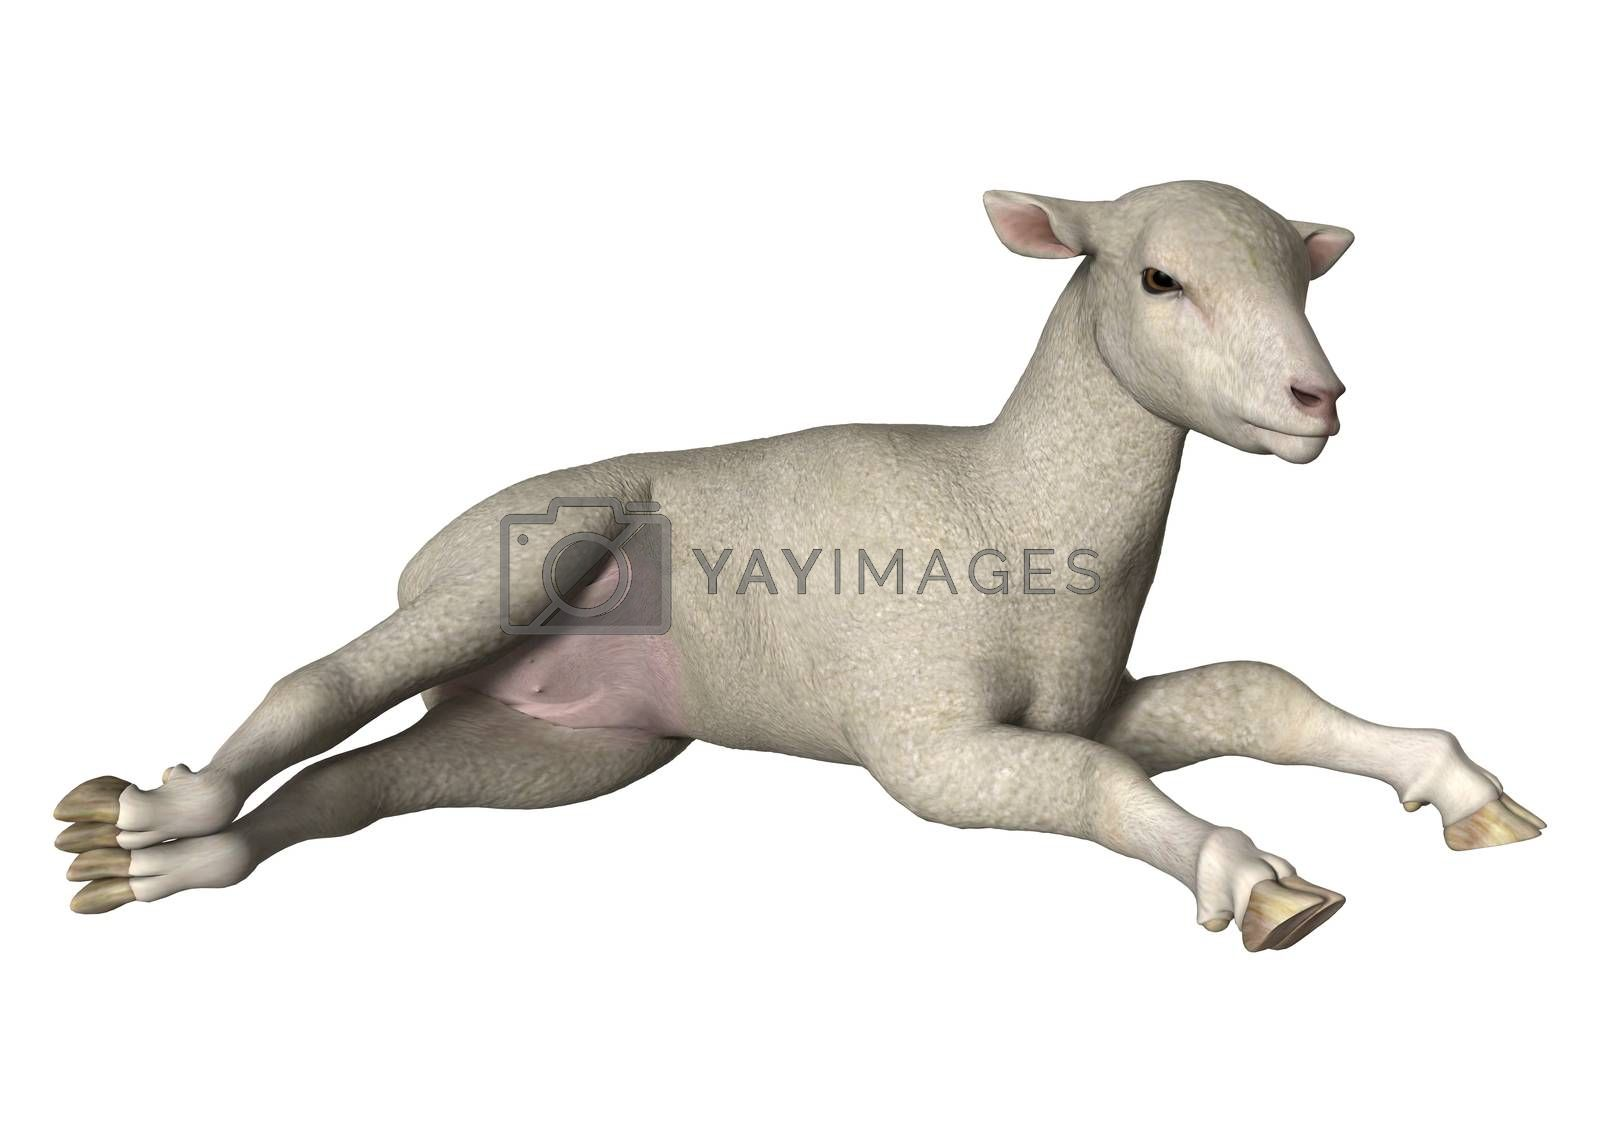 Royalty free image of Lamb on White by Vac